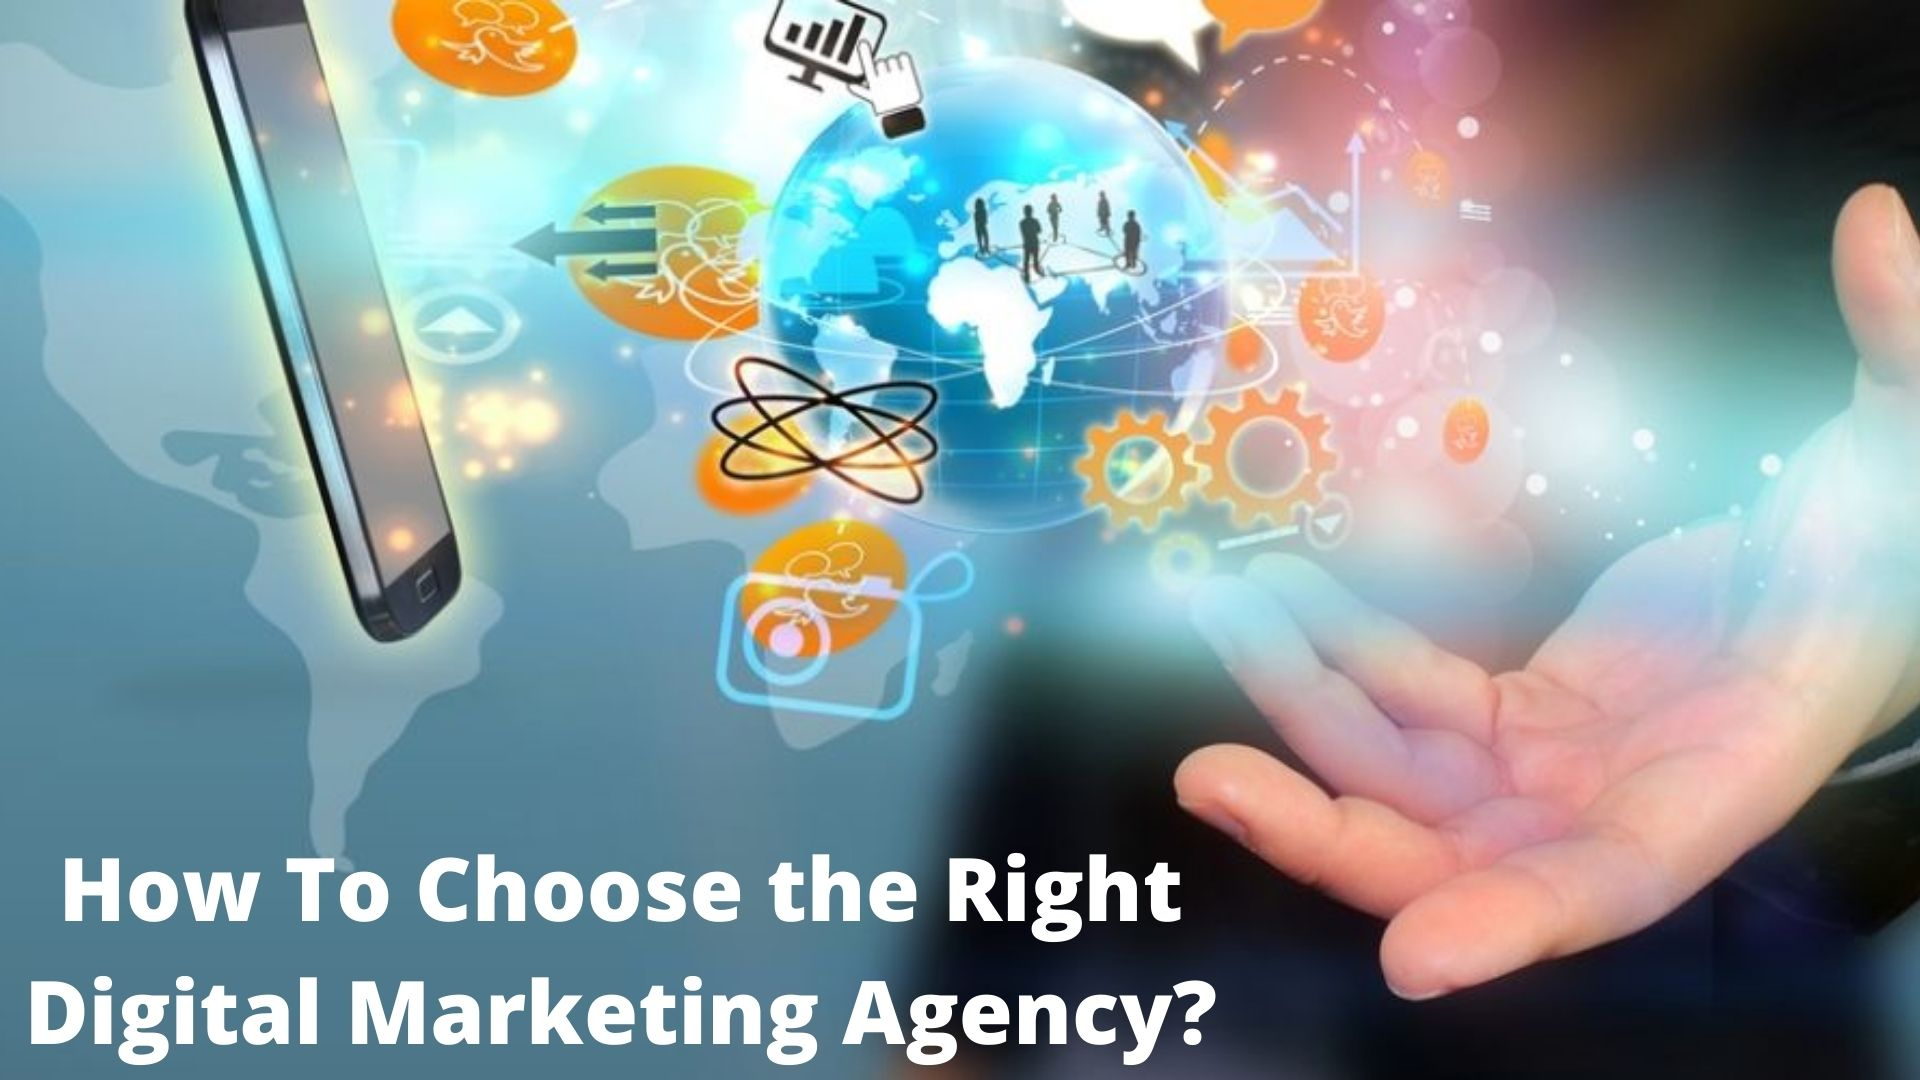 Right Digital Marketing Agency